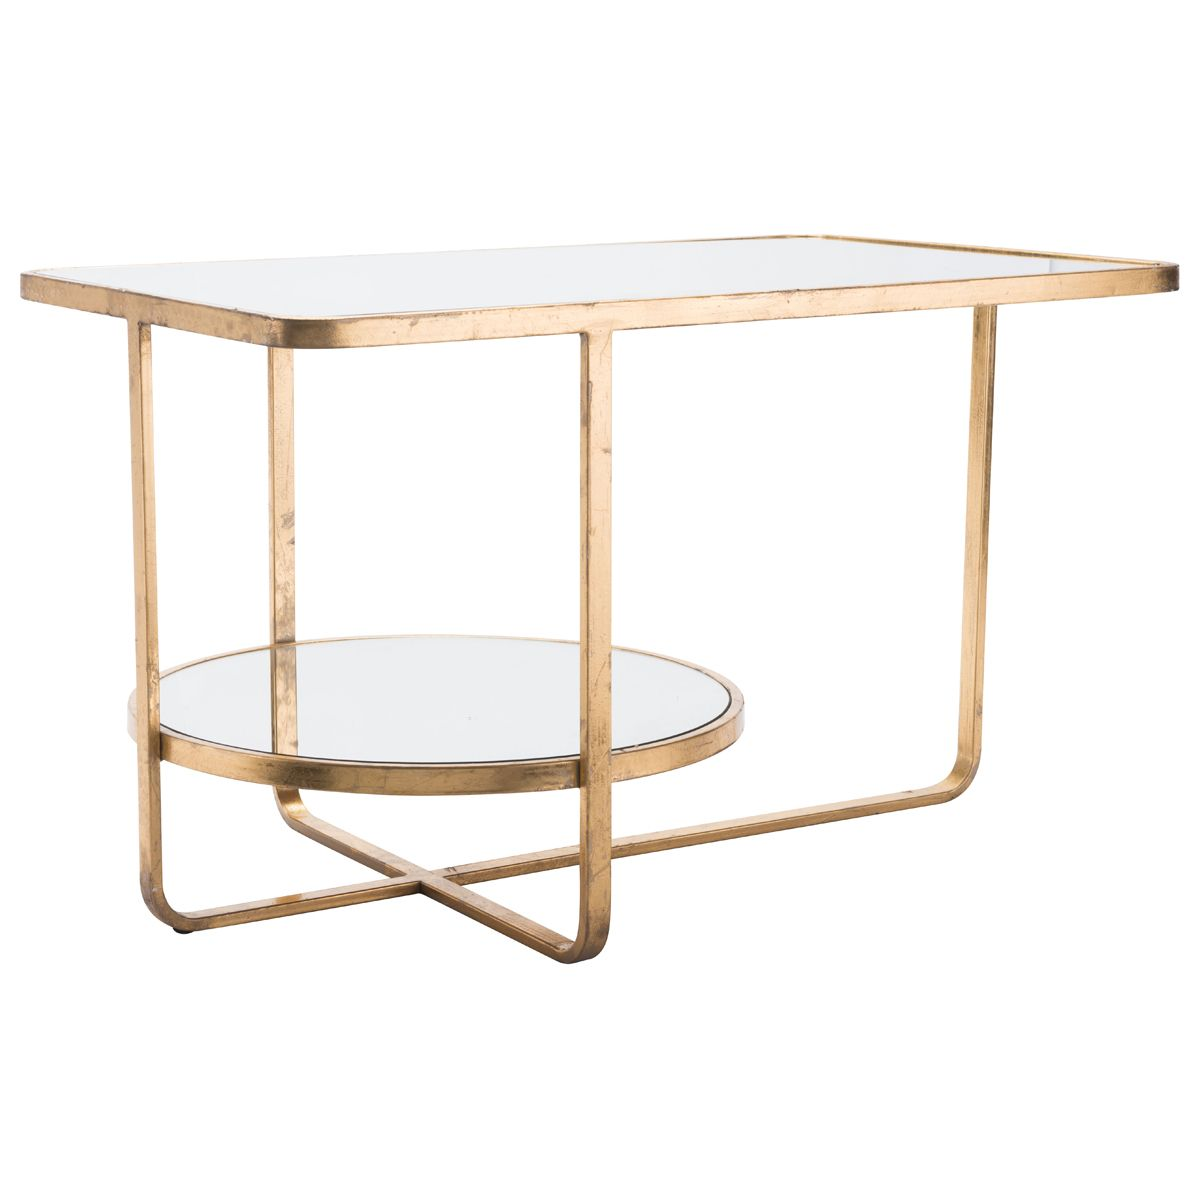 Geo Coffee Table Pick Up A Modern Rectangular Coffee Table That Is Built To Last Thanks To The Geo Co Clear Coffee Table Gold Coffee Table Steel Coffee Table [ 1200 x 1200 Pixel ]